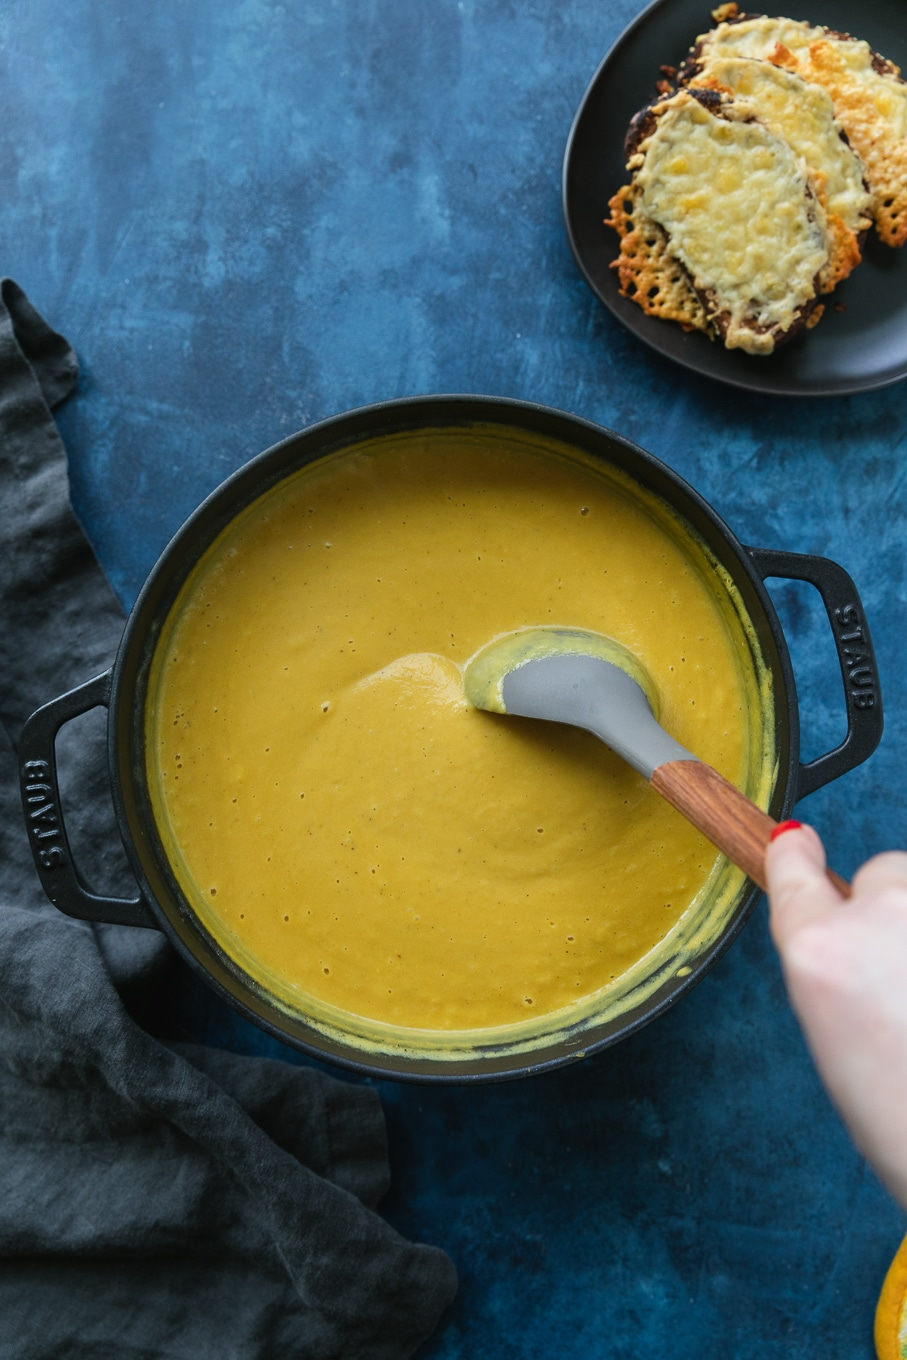 Overhead shot of a black cast iron pot filled with orange soup and a hand stirring it with a grey and wooden spoon